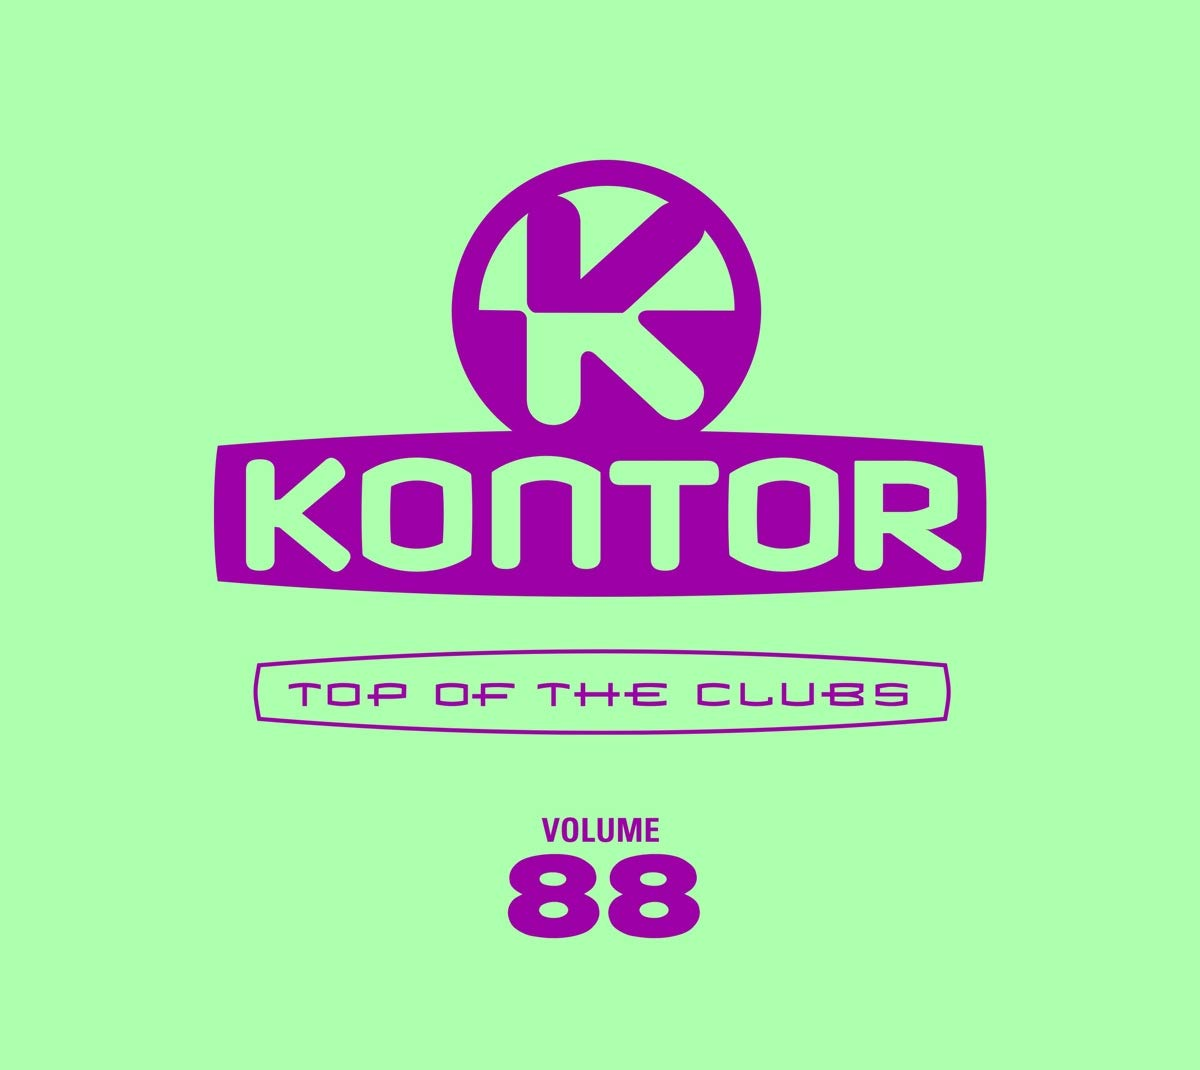 VA - Kontor Top Of The Clubs Volume 88 (2021) [FLAC] Download